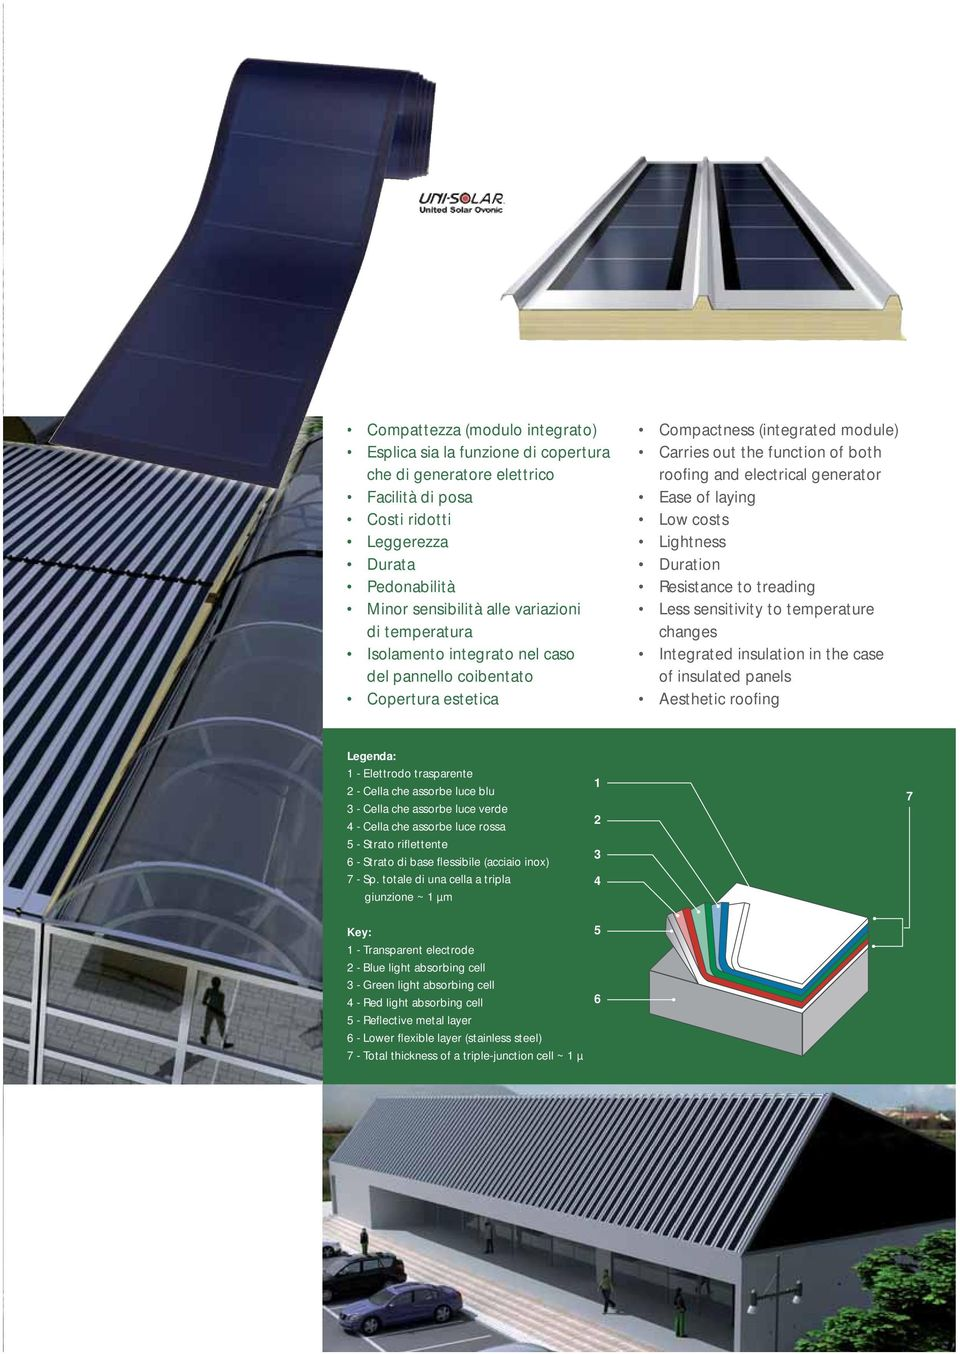 Low costs Lightness Duration Resistance to treading Less sensitivity to temperature changes Integrated insulation in the case of insulated panels Aesthetic roofing Legenda: 1 - Elettrodo trasparente